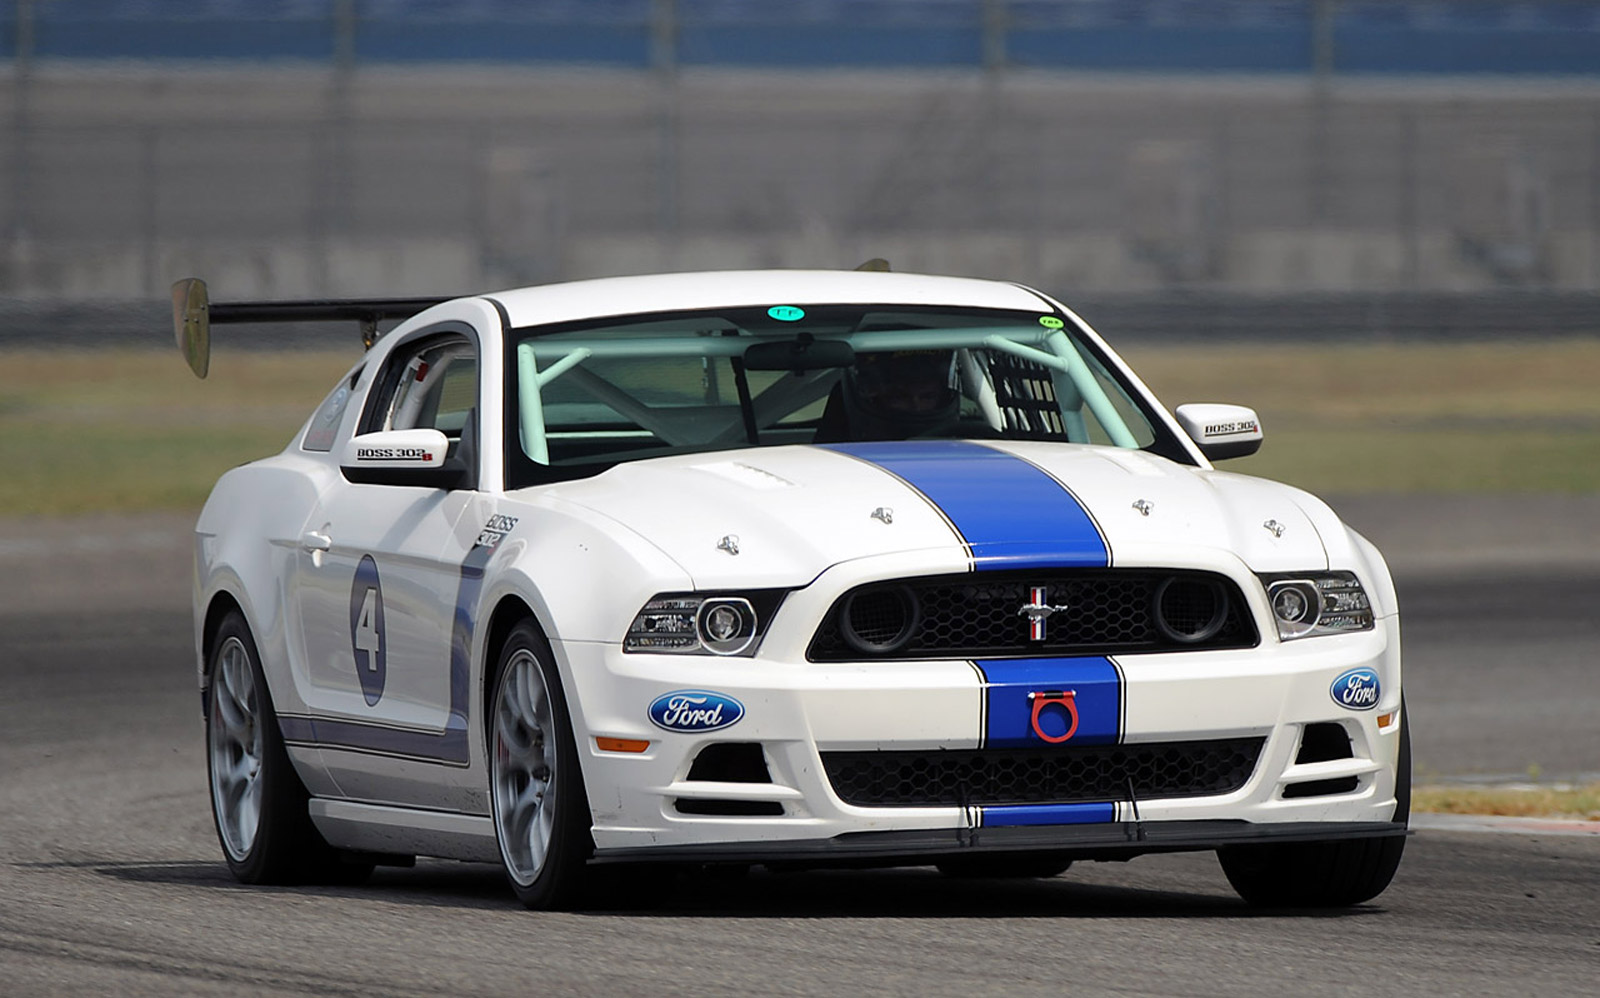 Ford Mustang Boss 302s Race Car Still Available For 2014